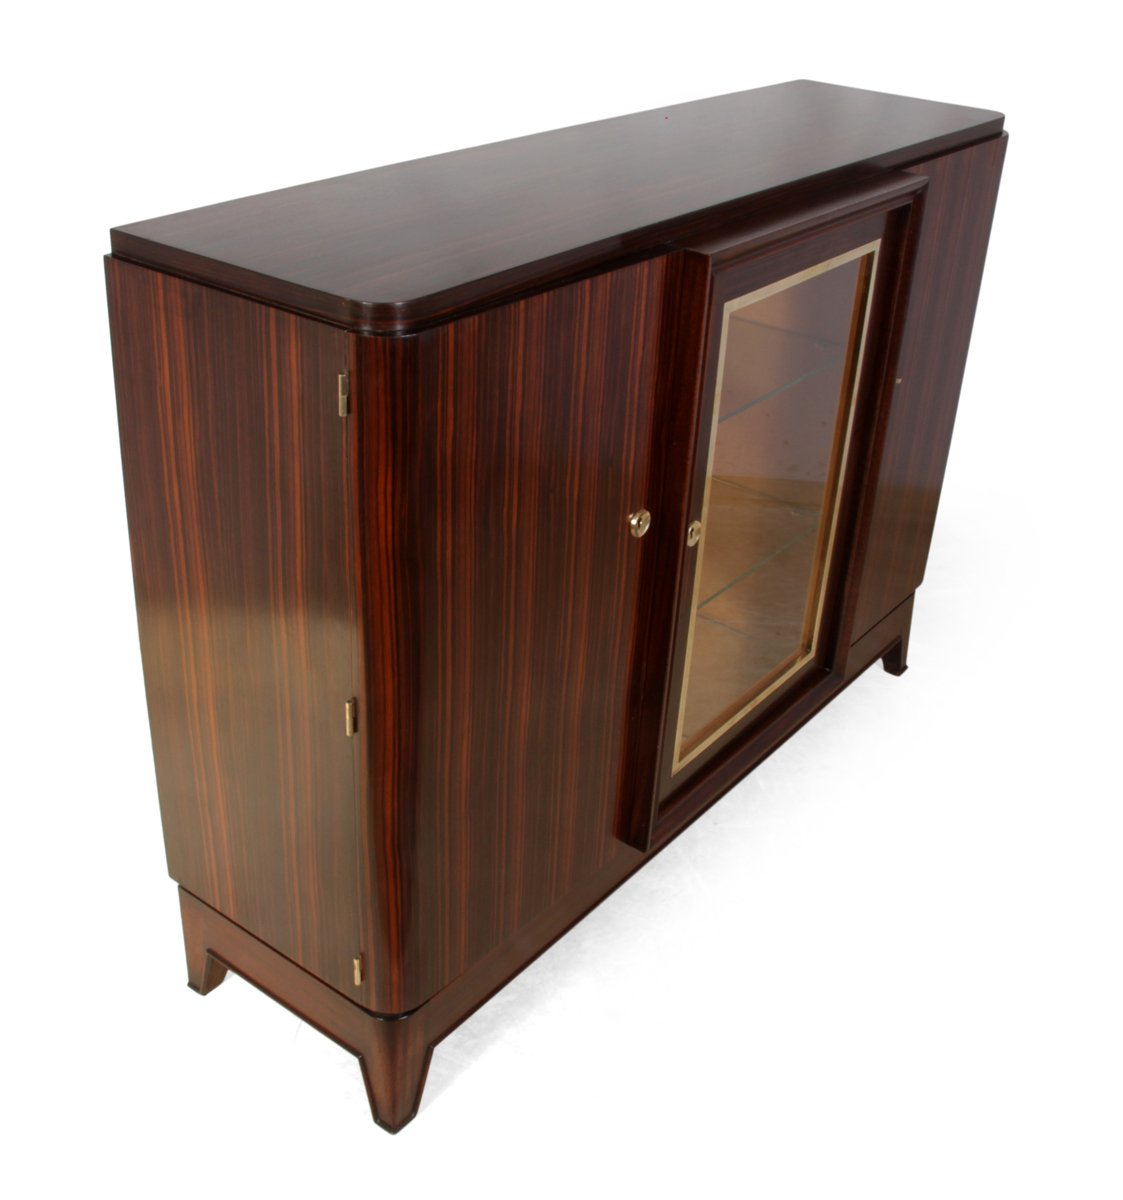 French art deco sideboard in macassar ebony 1930s for for Meuble art deco 1930